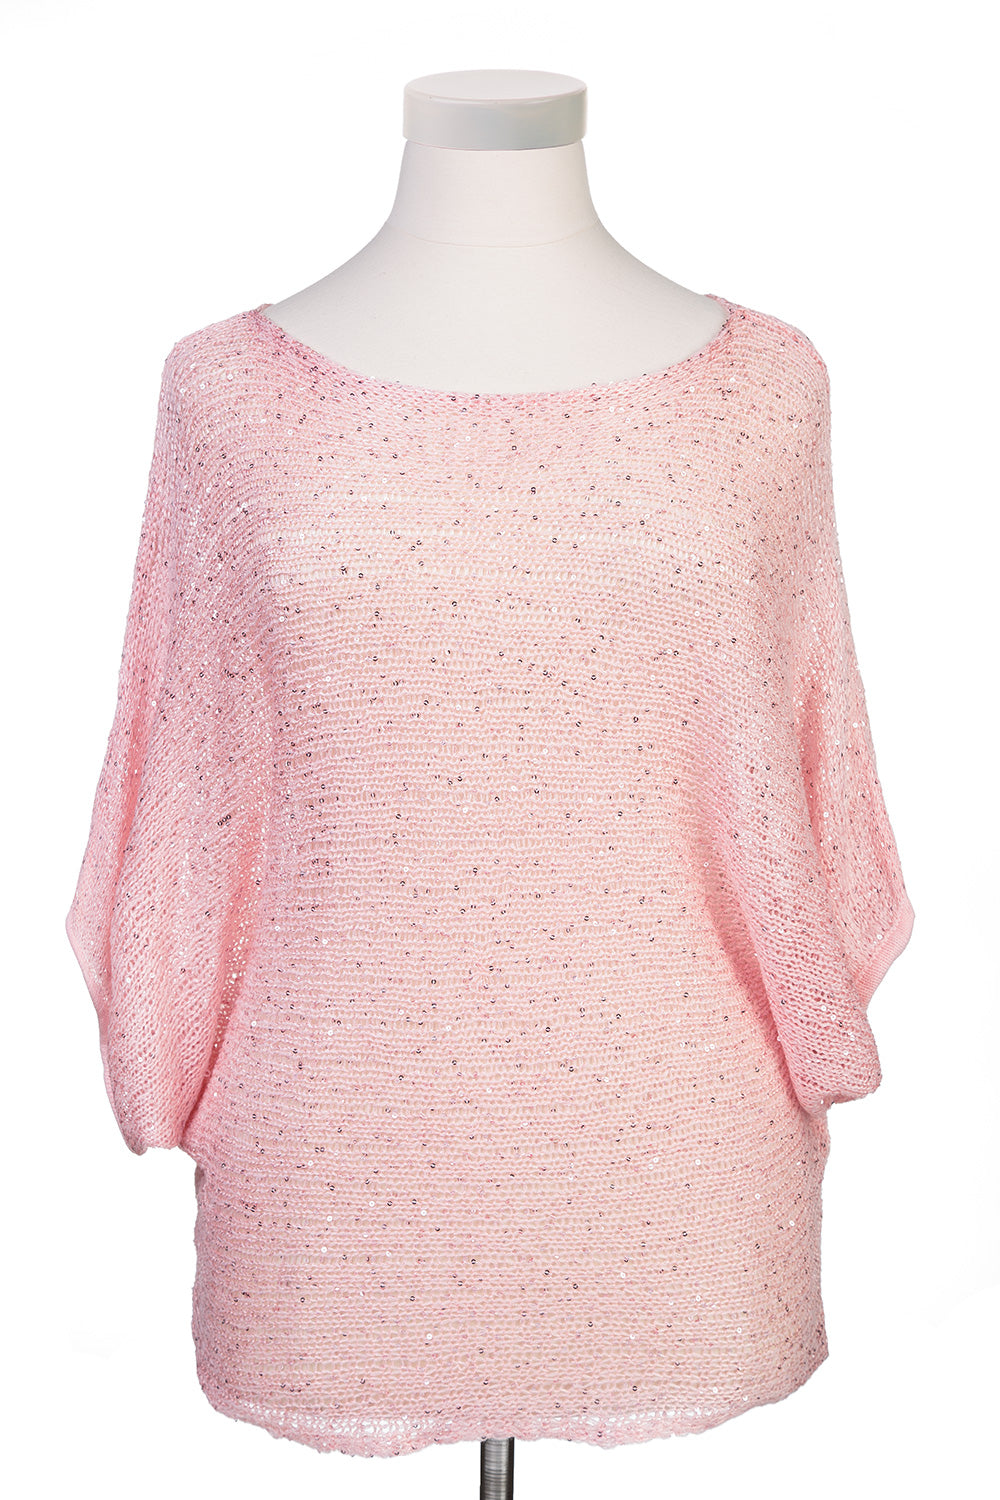 Type 1 Breezy Sequins in Pink Sweater